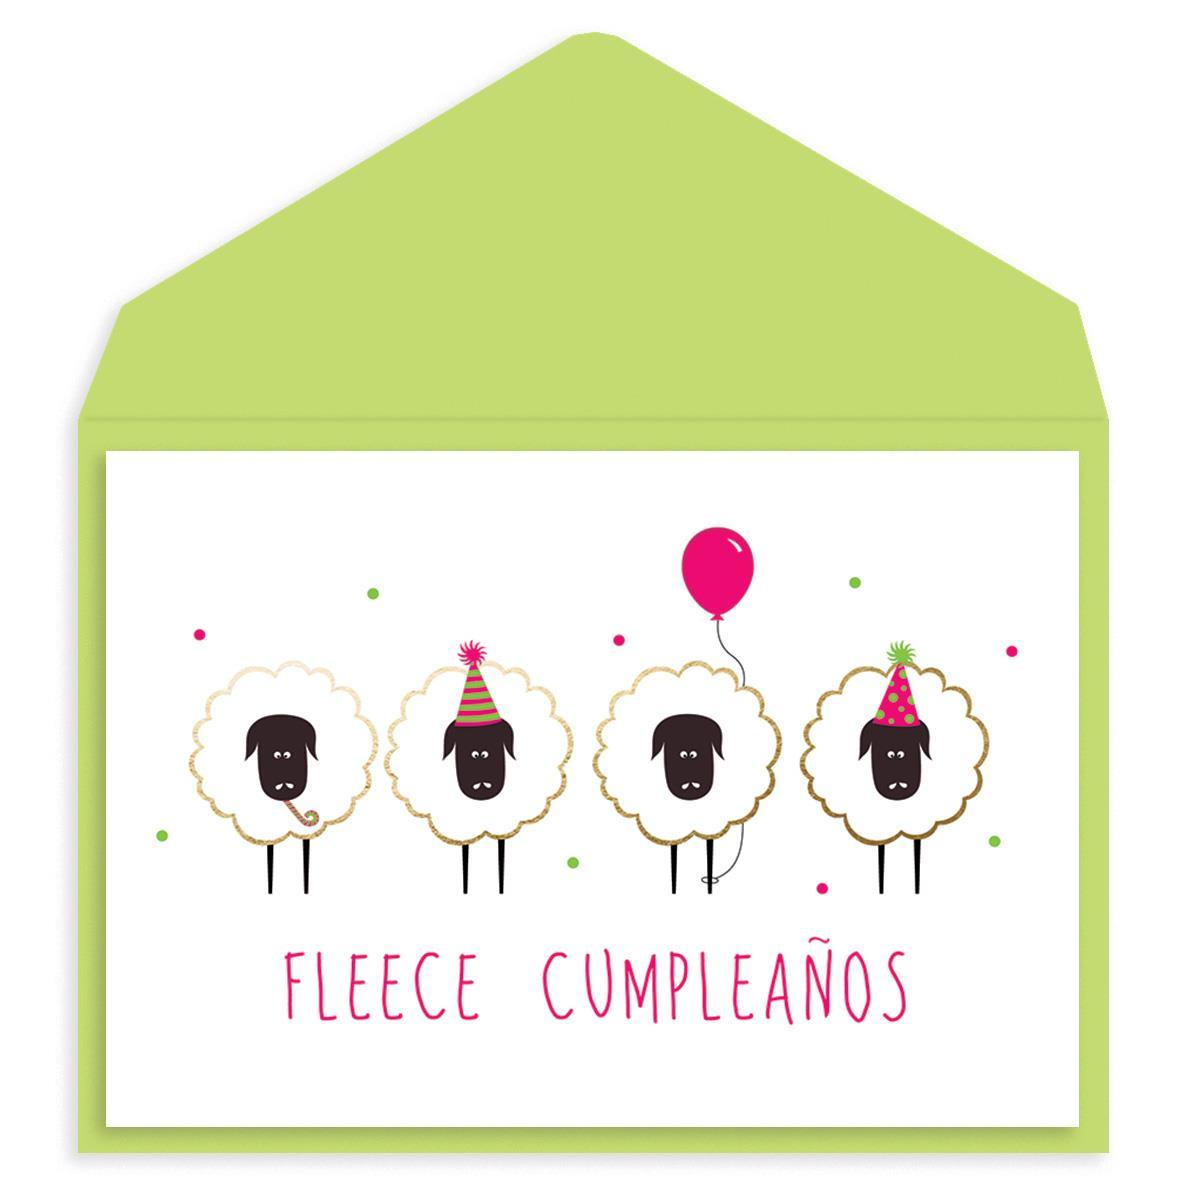 Fleece Cumpleanos Birthday Card